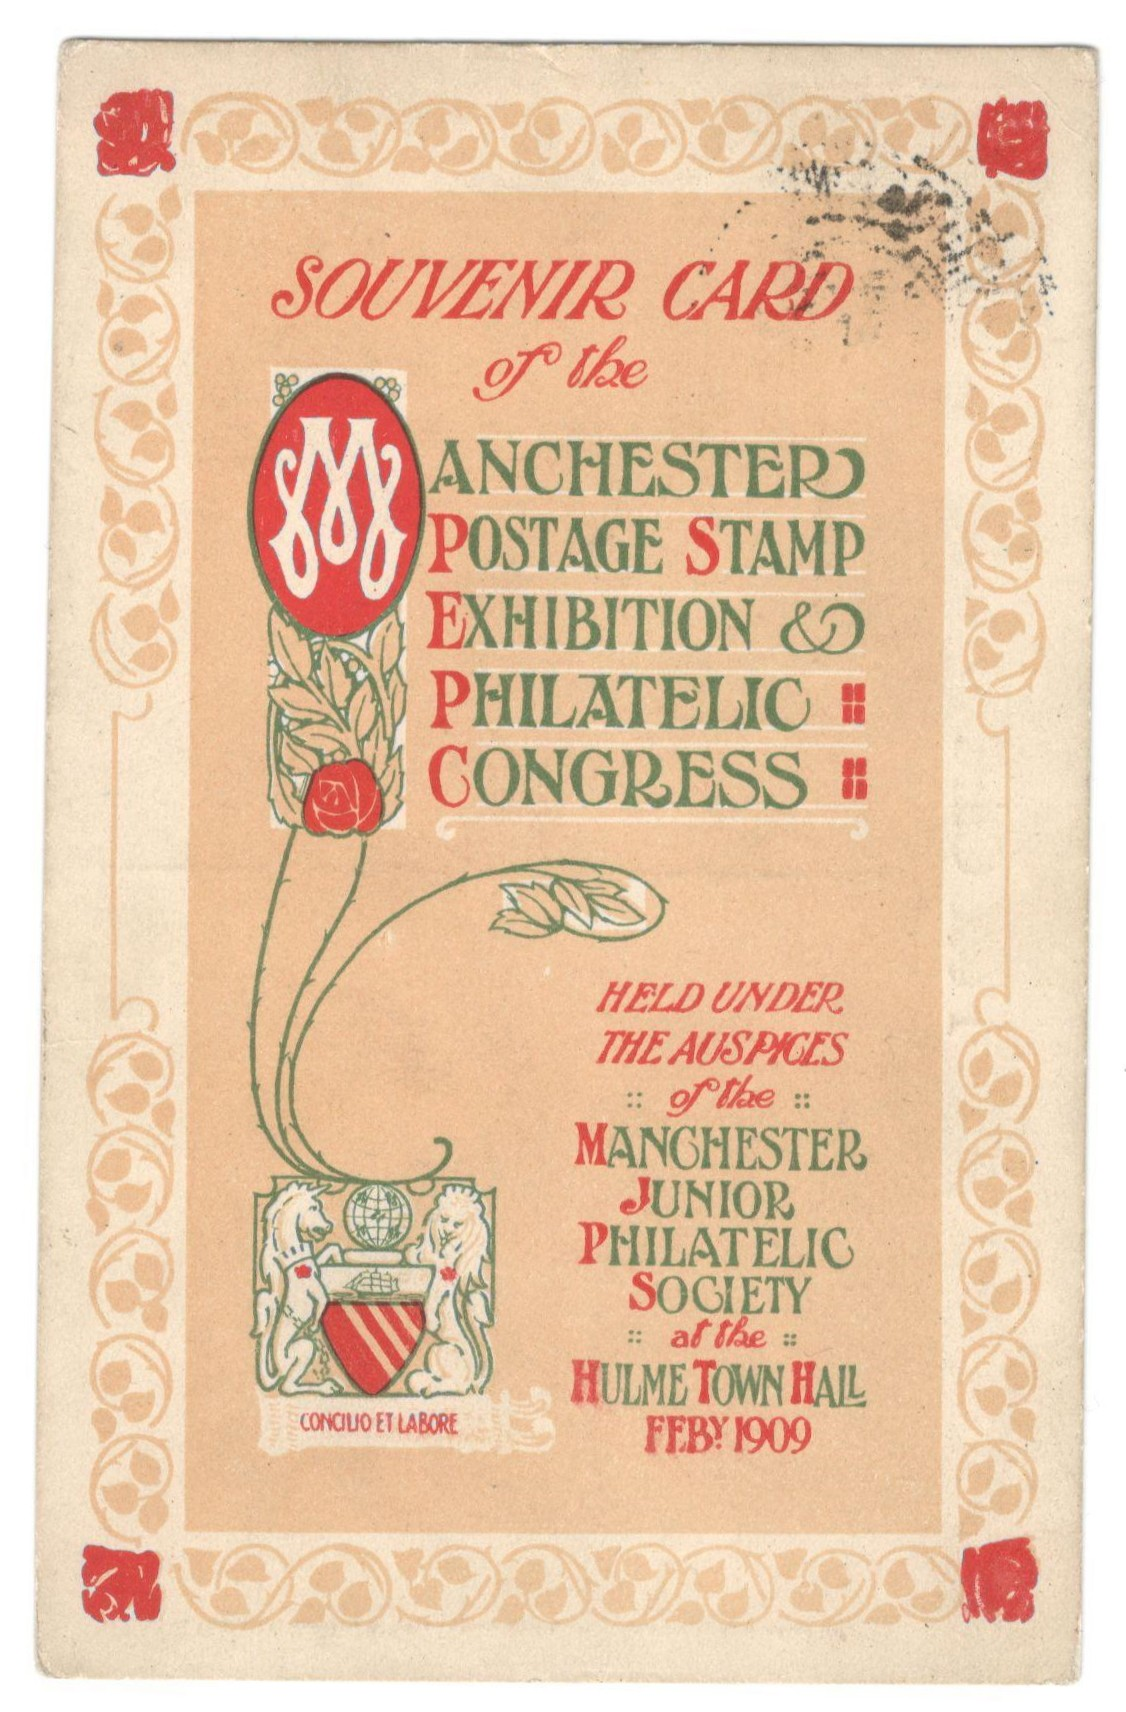 SOUVENIR CARD OF THE MANCHESTER POSTAGE STAMP EXHIBITION & PHILATELIC CONGRESS